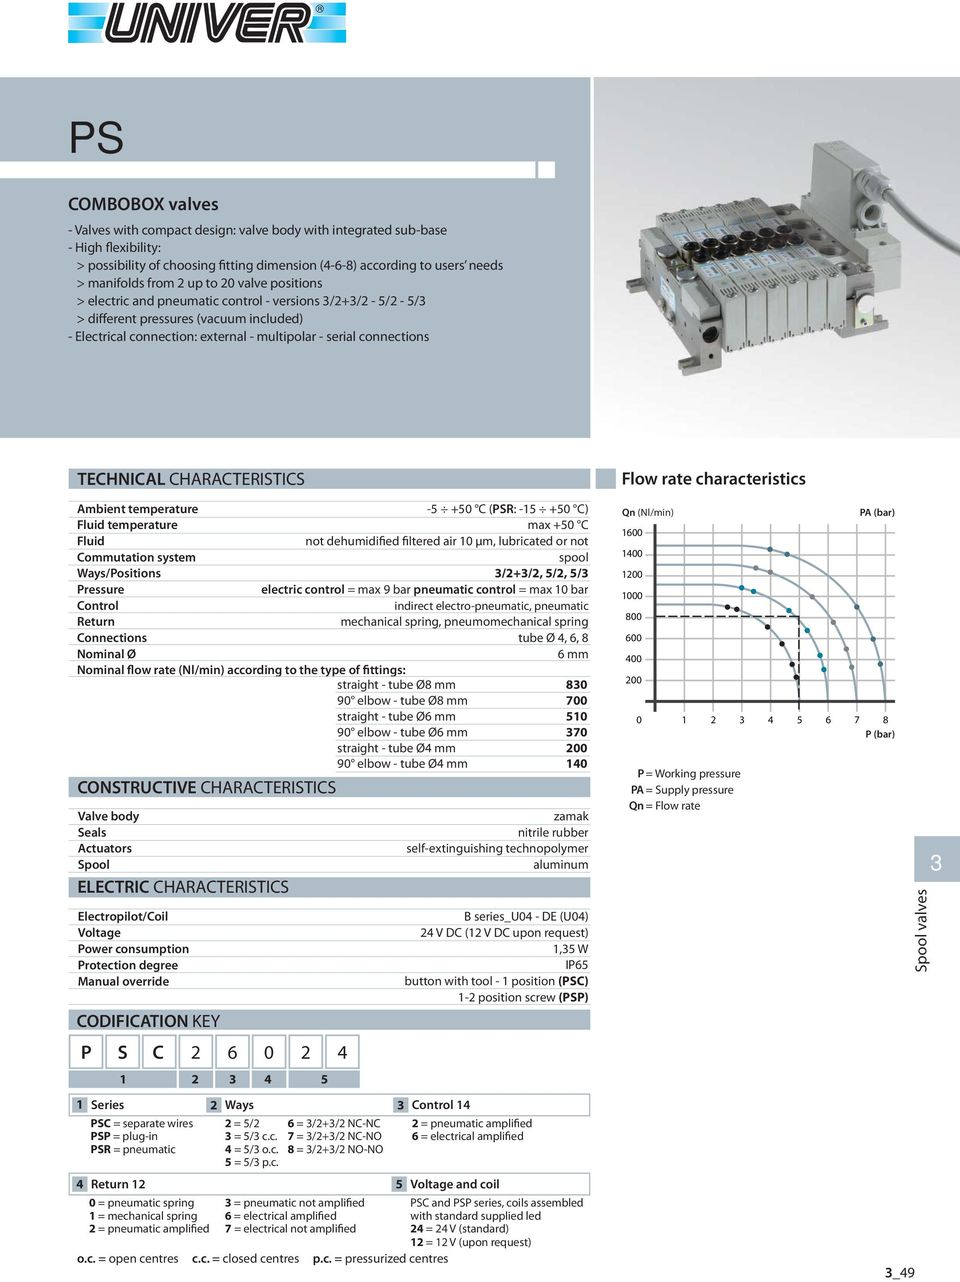 Ambient temperature Fluid temperature Fluid Commutation system Ways/Positions Control Return Connections Nominal Ø Nominal flow rate (Nl/min) according to the type of fittings: straight - tube Ø mm 0